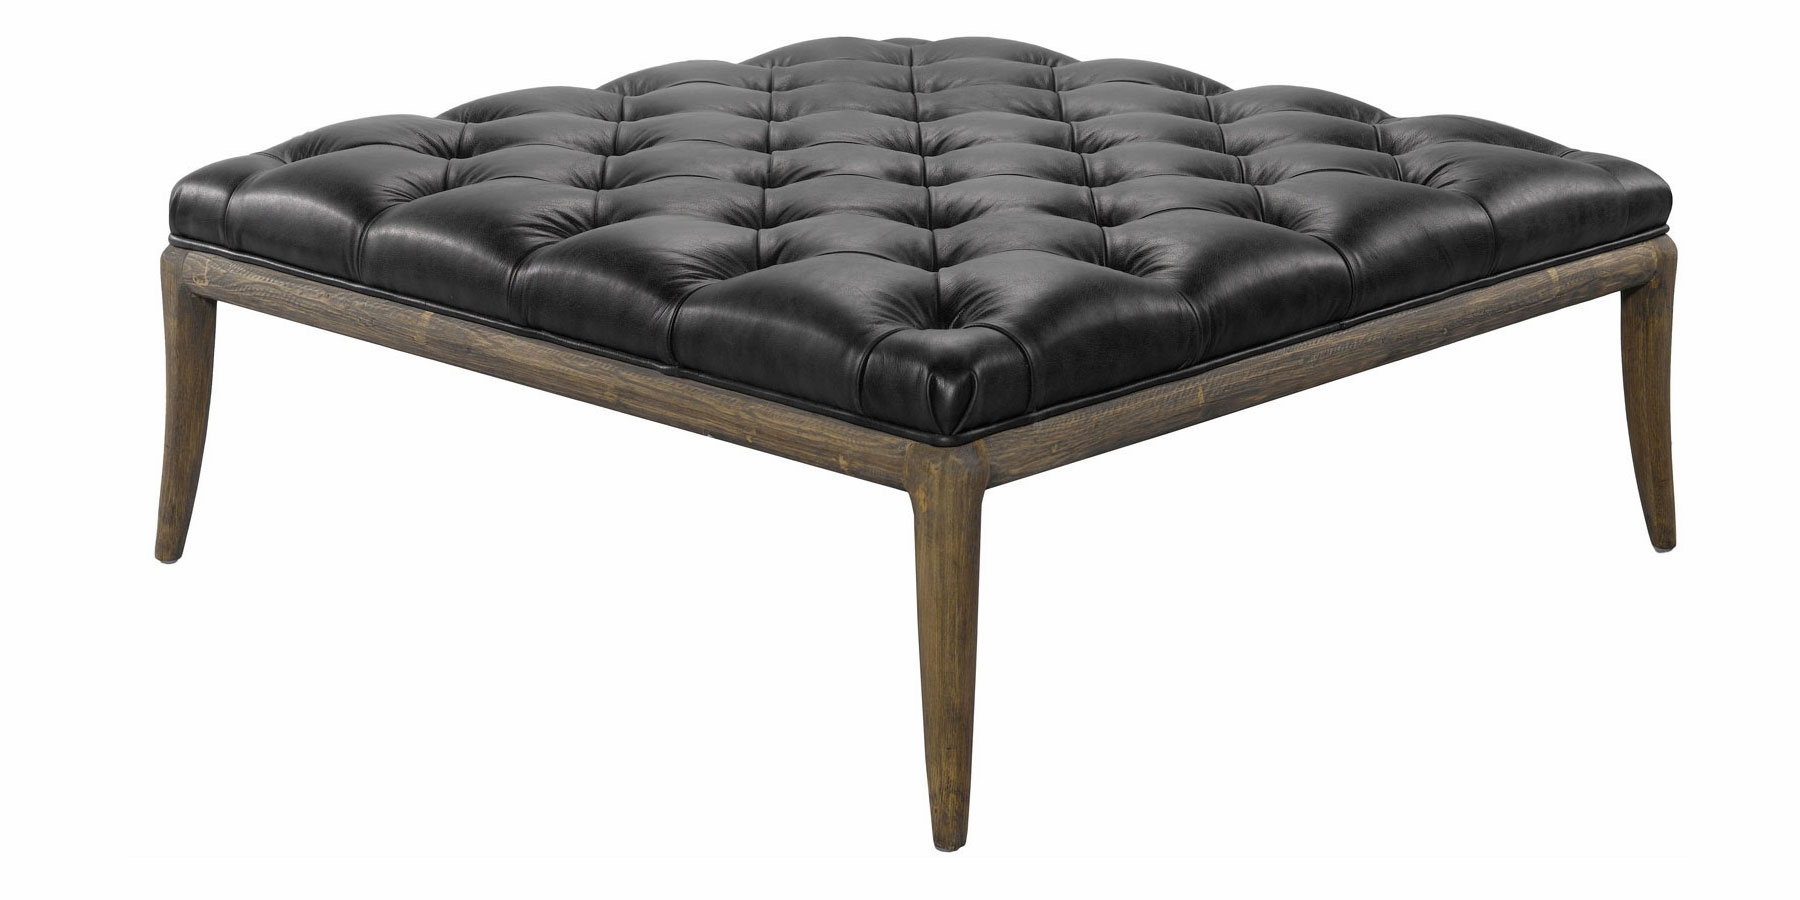 Titus quick ship tufted leather coffee table ottoman Ottoman bench coffee table